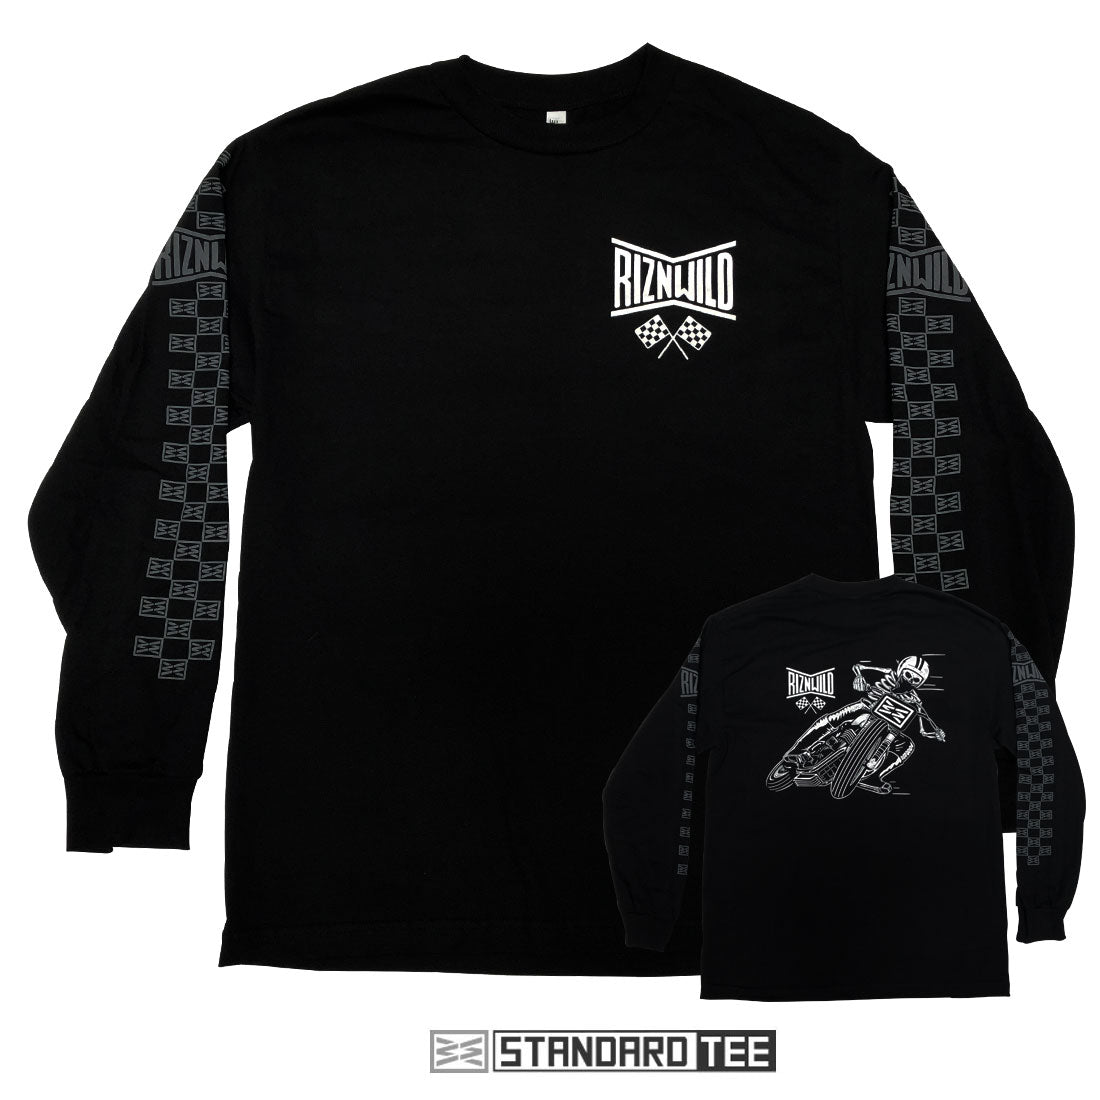 Flat Tracker Mens Long Sleeve Standard Tee in Black by RIZNWILD